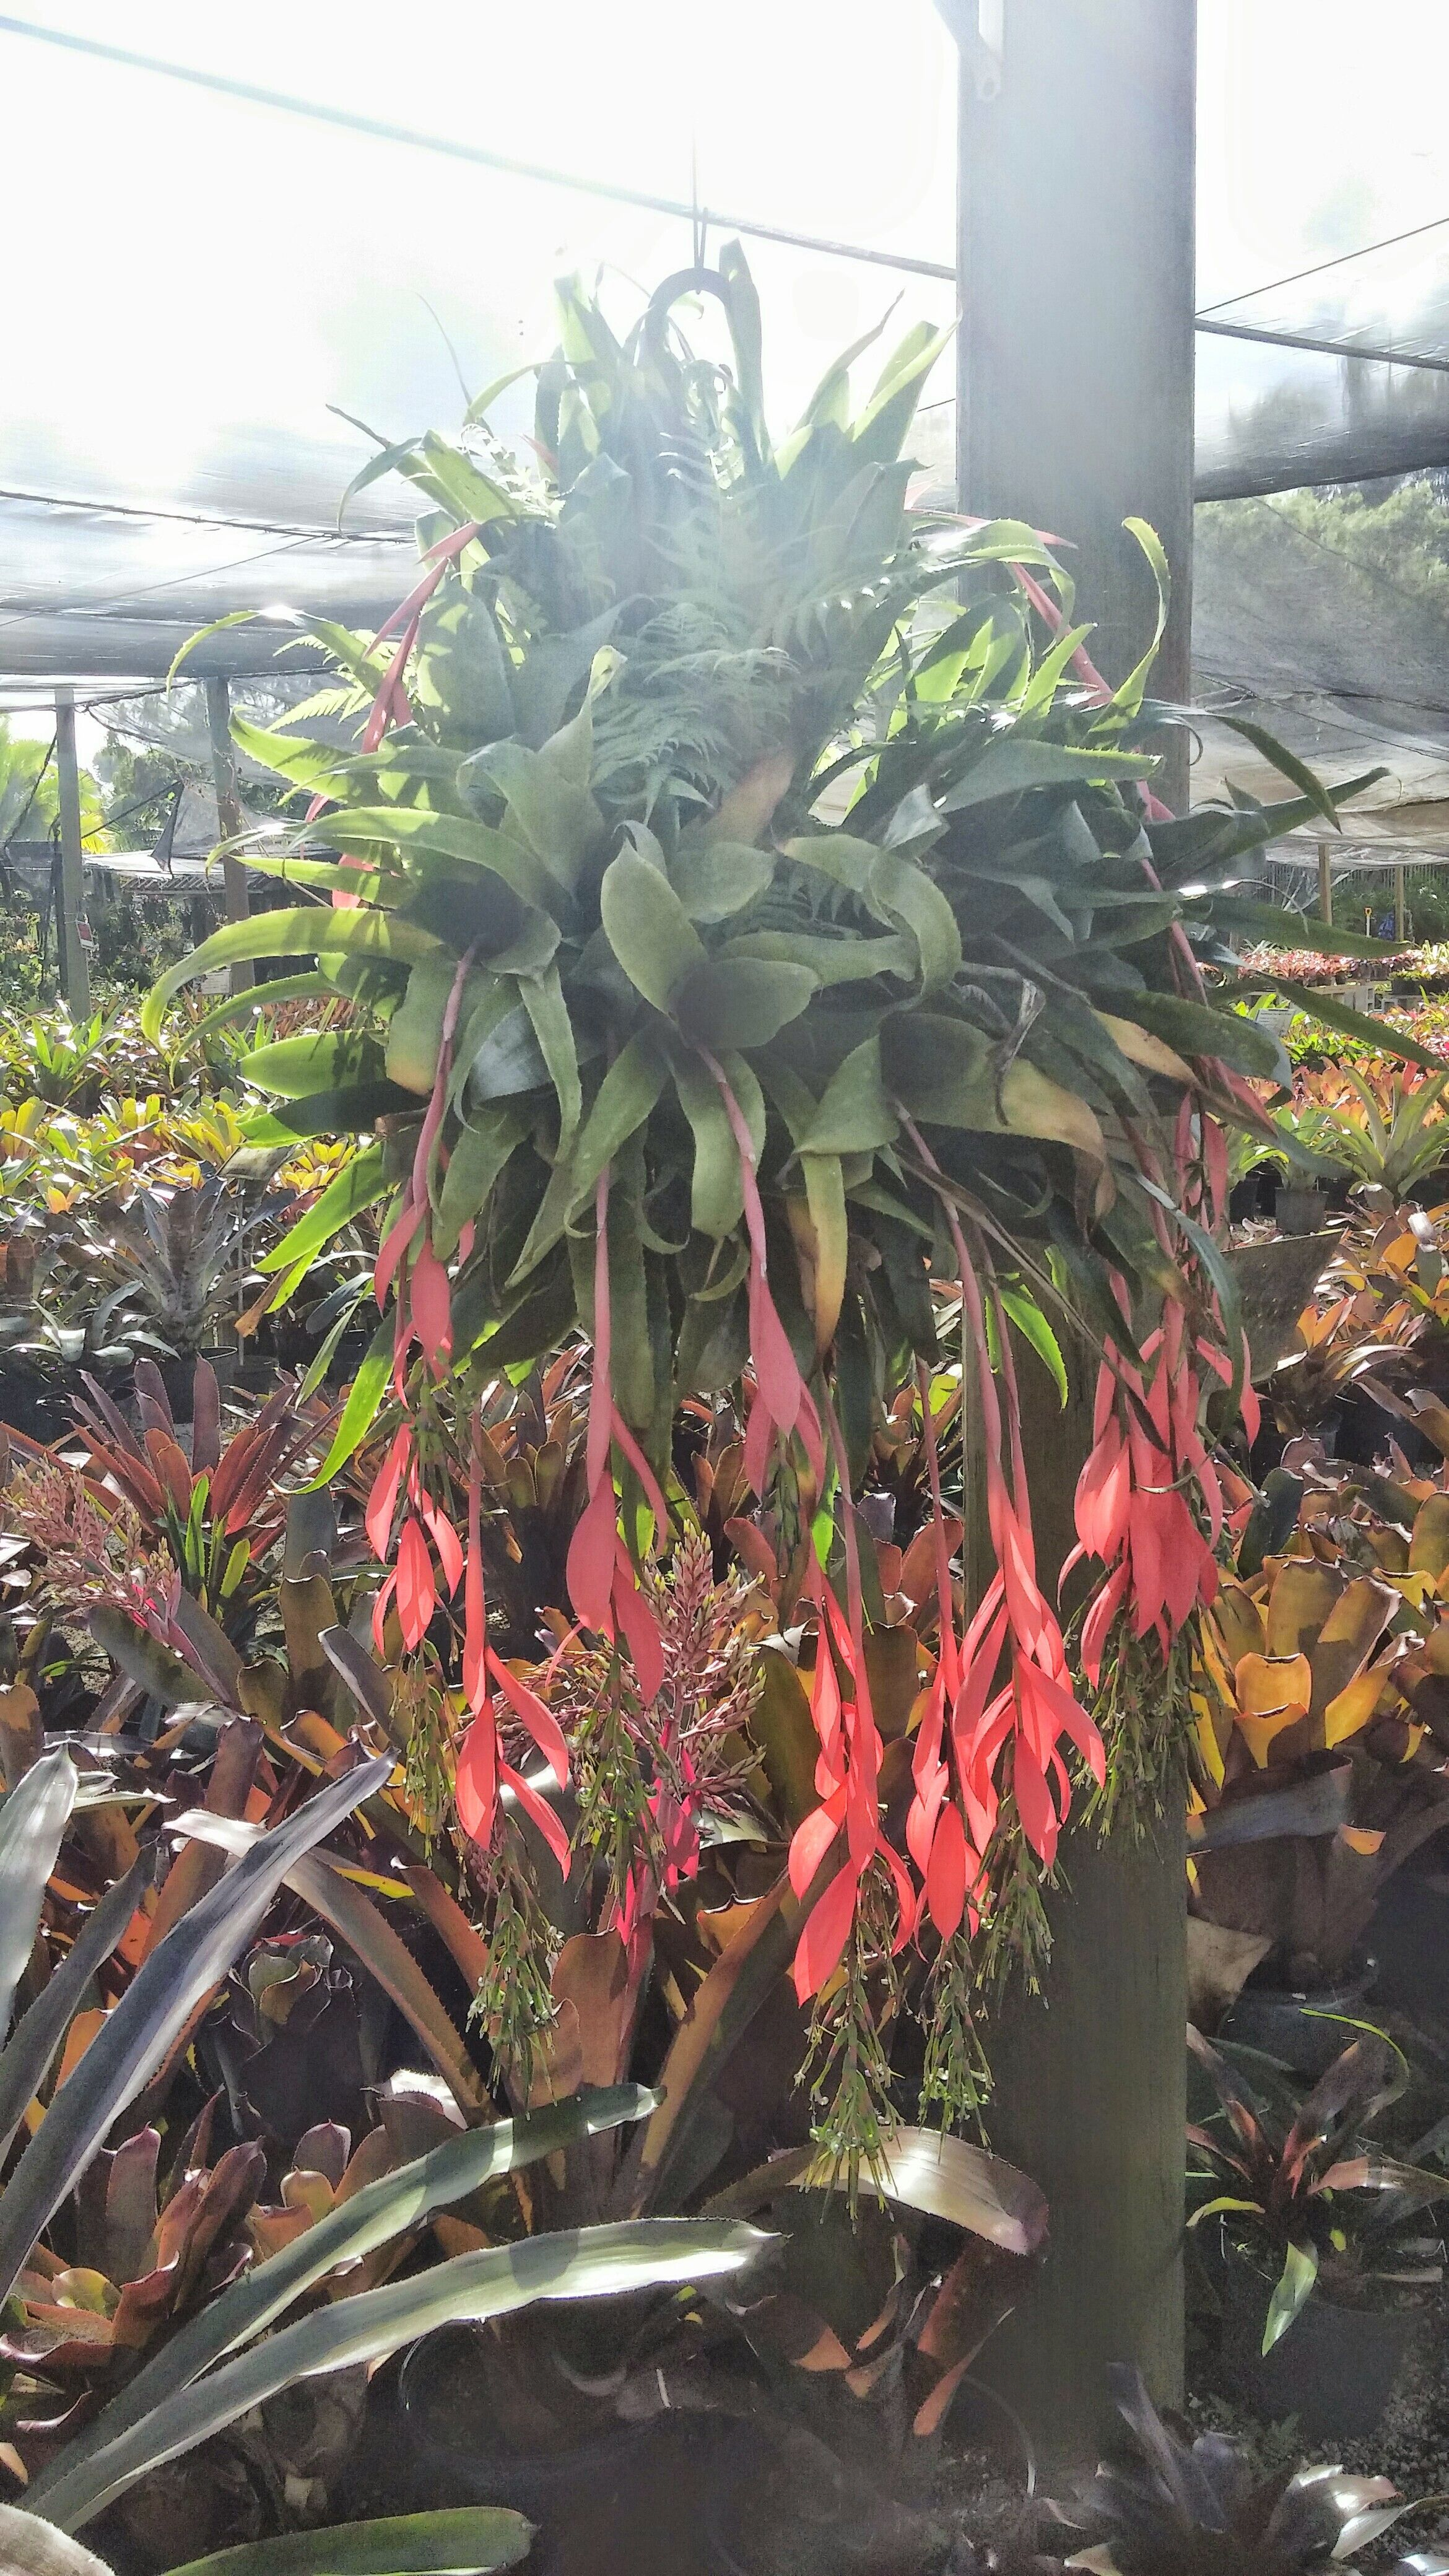 Special Billbergia Nutans Tears This Arrangement Is Hanging An Ocean Bromeliads Billbergia Nutans Tears This Plantsofsouthwest Plants Southwest Tucson houzz-03 Plants Of The Southwest